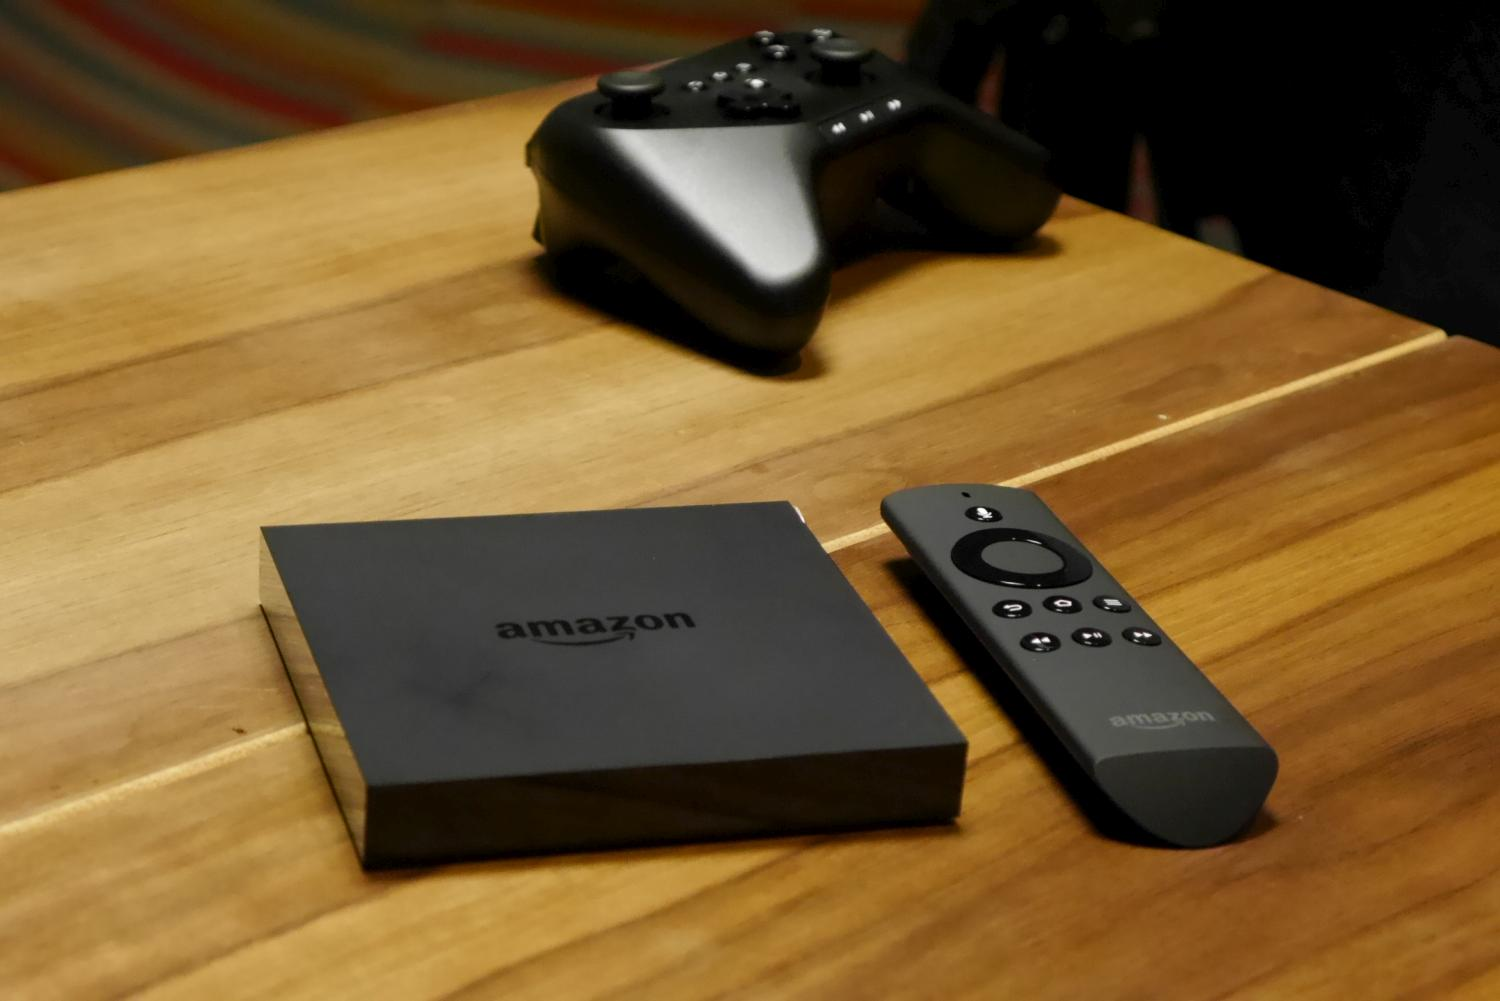 The Fire TV box is about the thickness of a dime turned on its side. Also shown are the included remote control and the $40 gamepad.